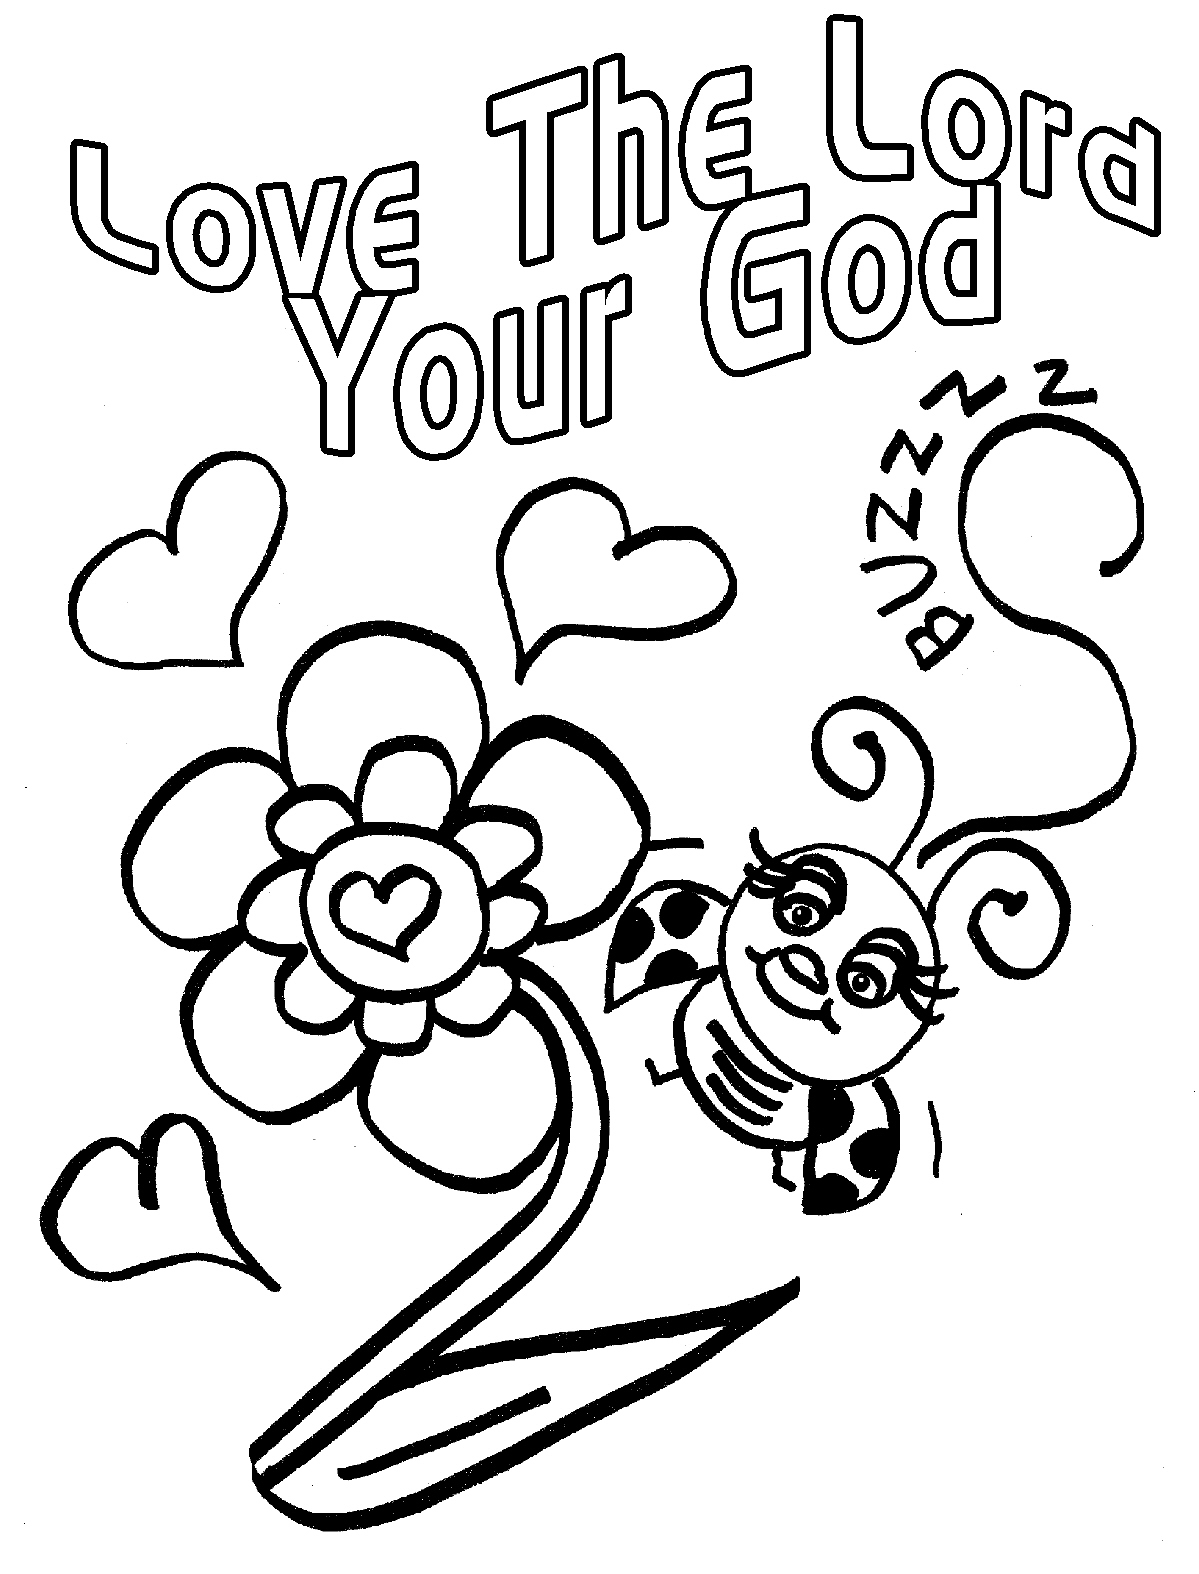 coloring sheet god gods love coloring pages coloring pages coloring god sheet